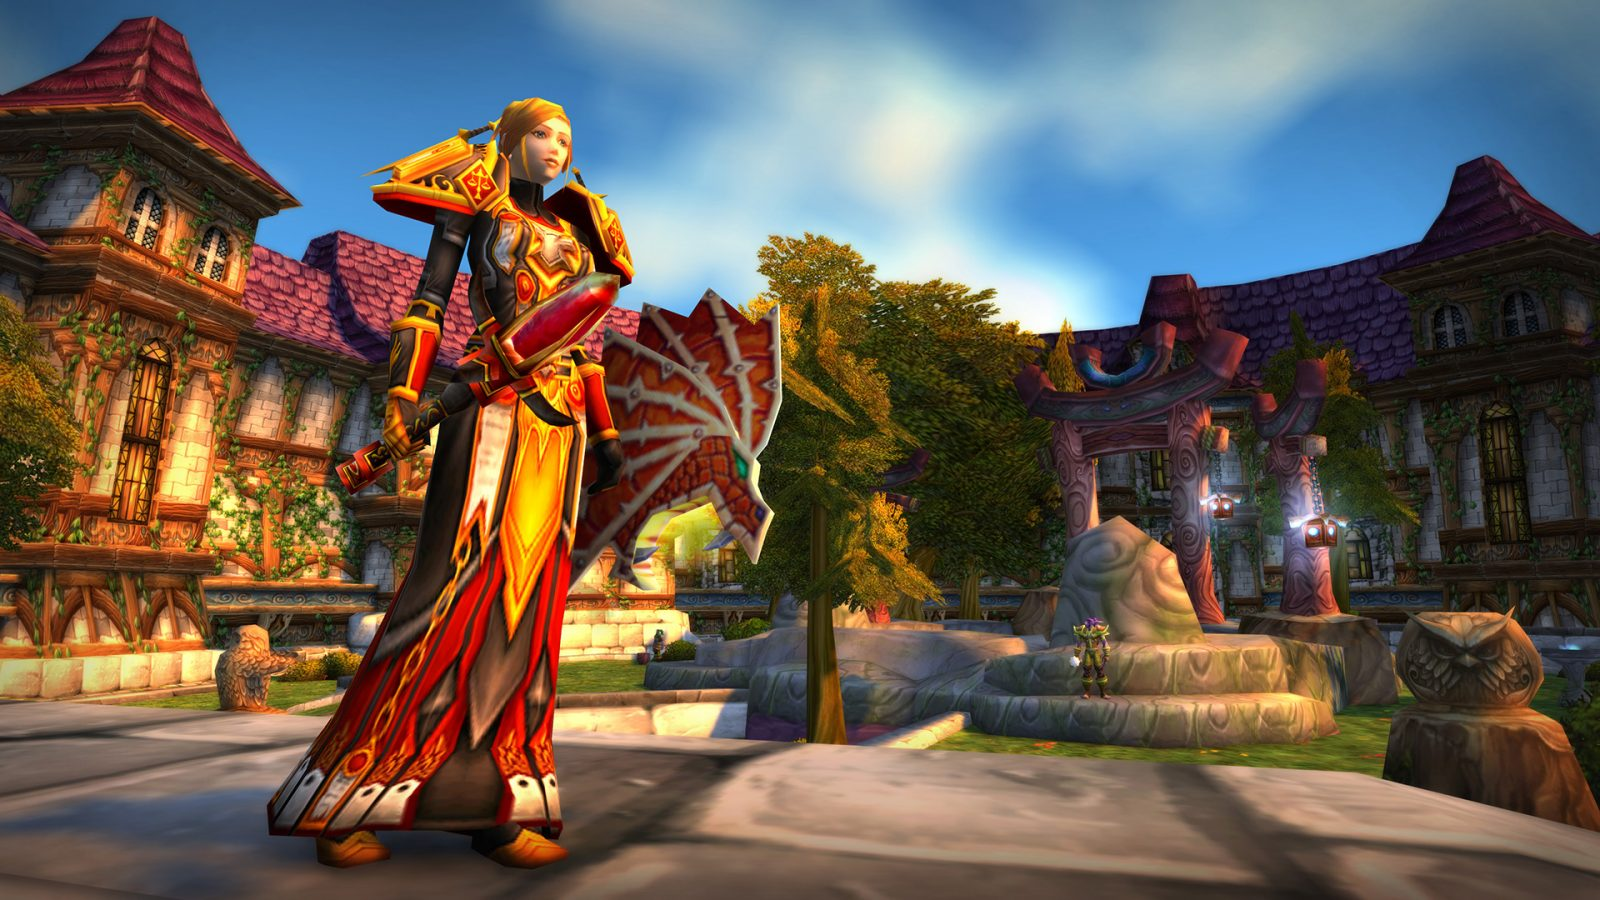 WoW Classic's new patch brings Alterac Valley and Warsong Gulch Battlegrounds